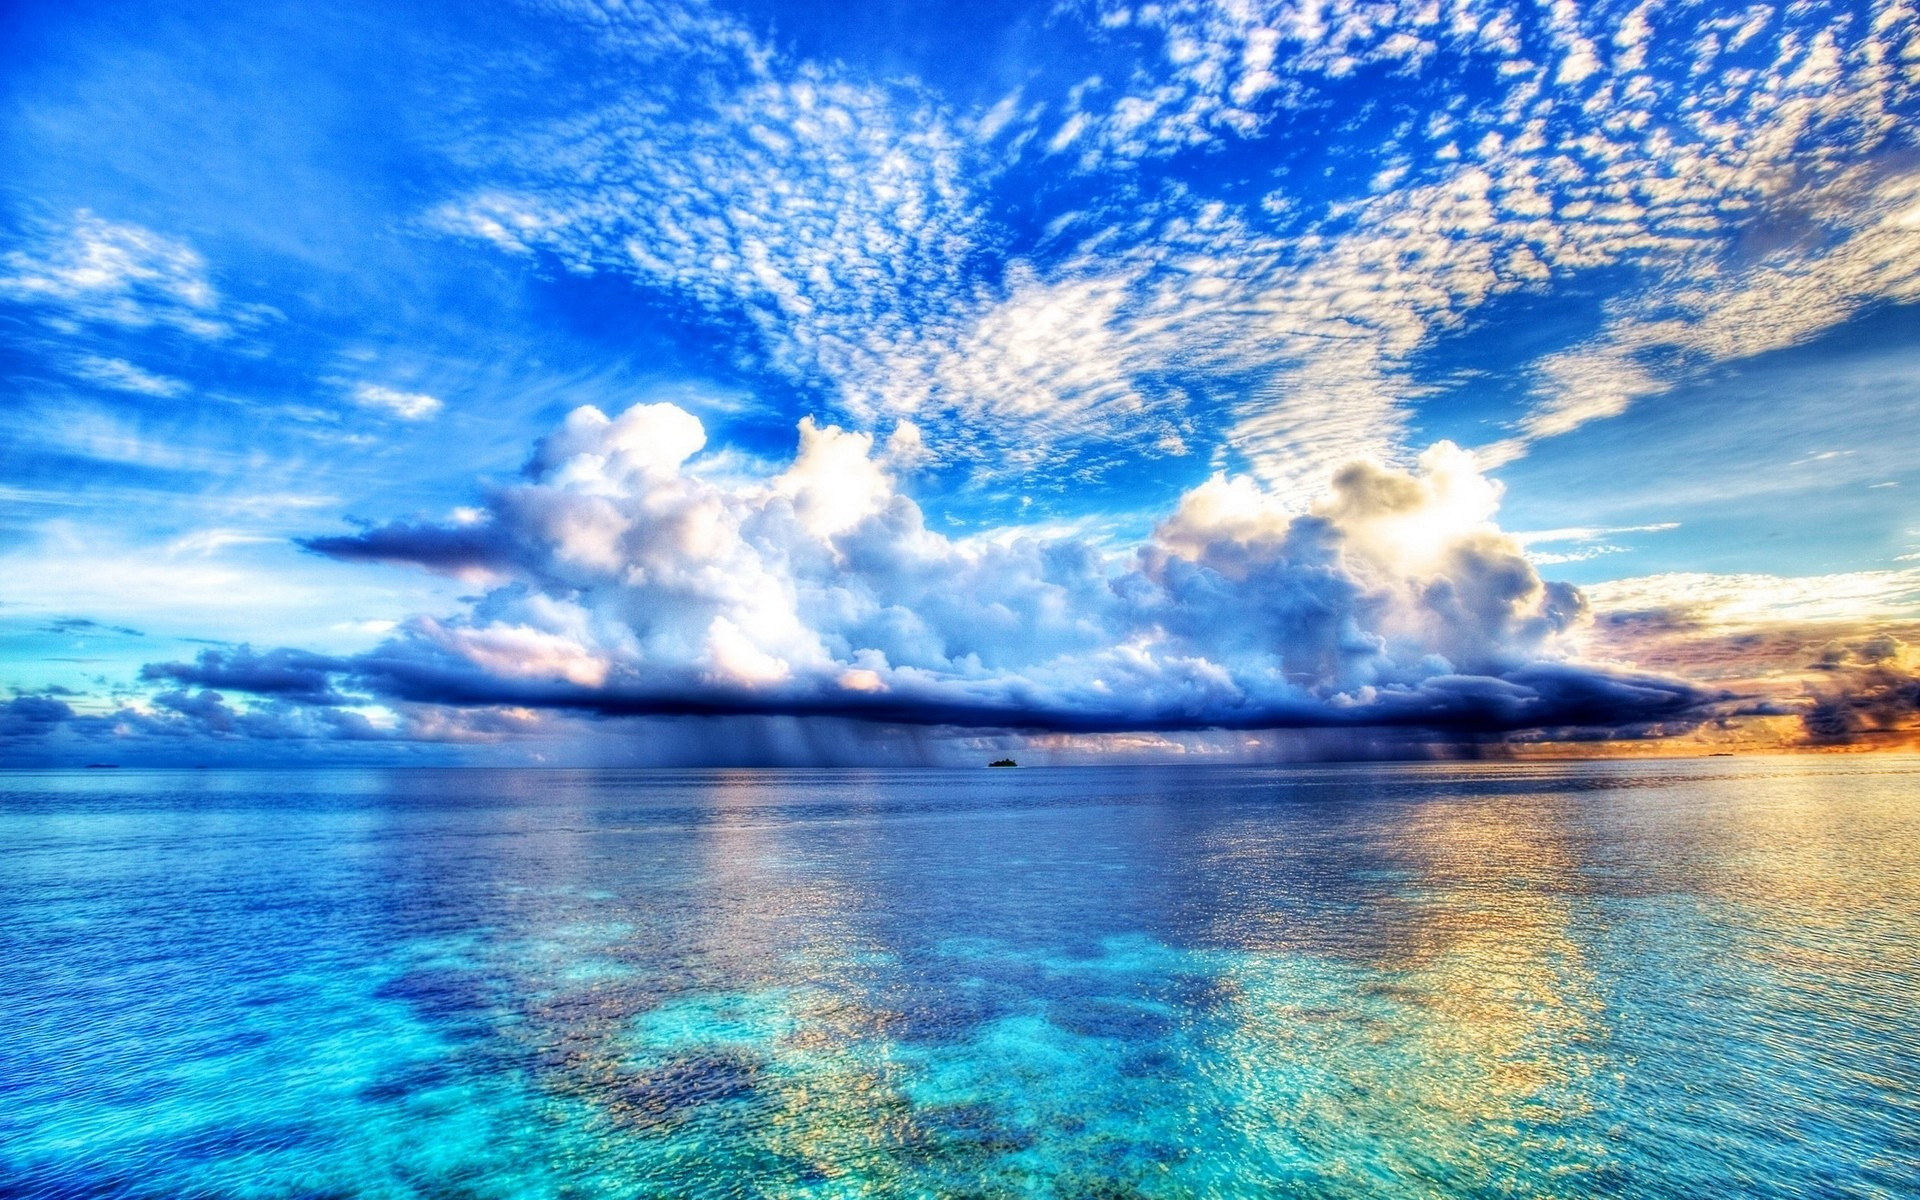 clouds landscapes blue skies sea natural scenery wallpaper